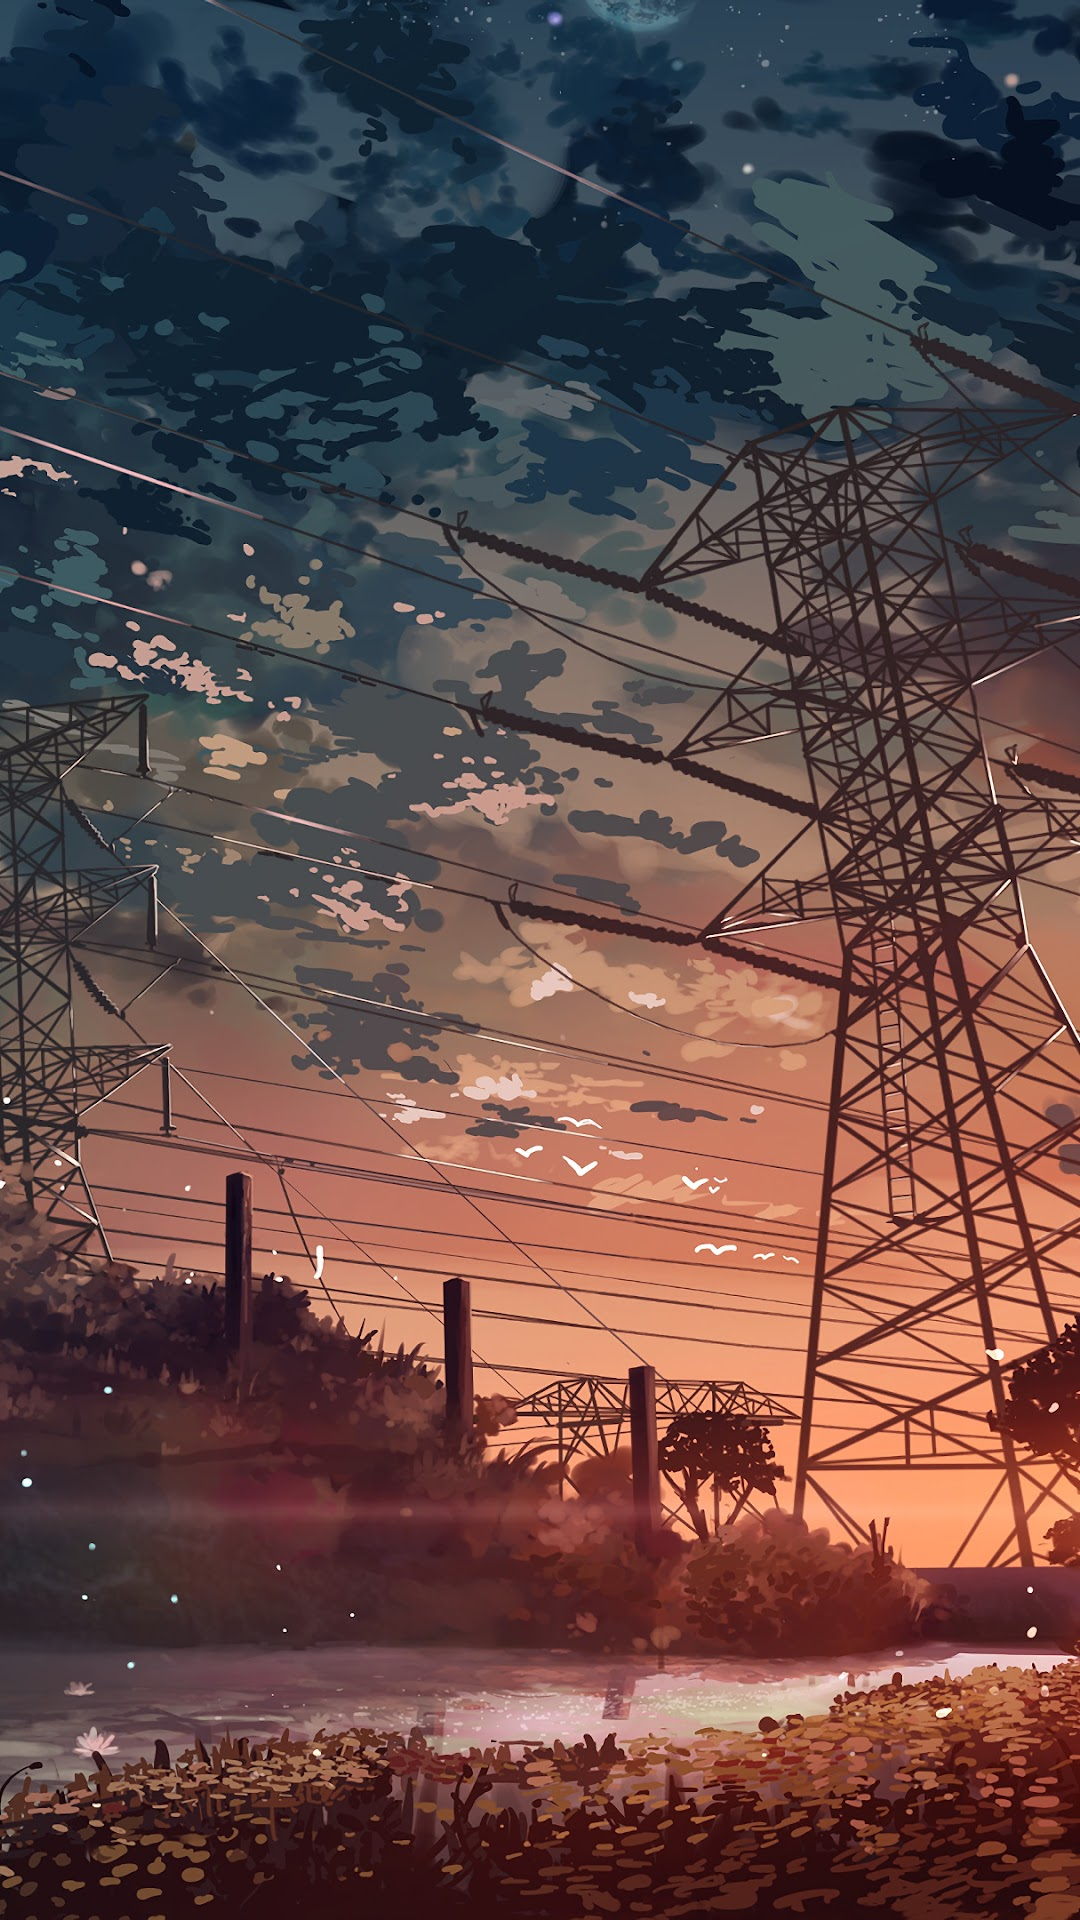 Anime Scenery Sunset 4k Wallpaper 112